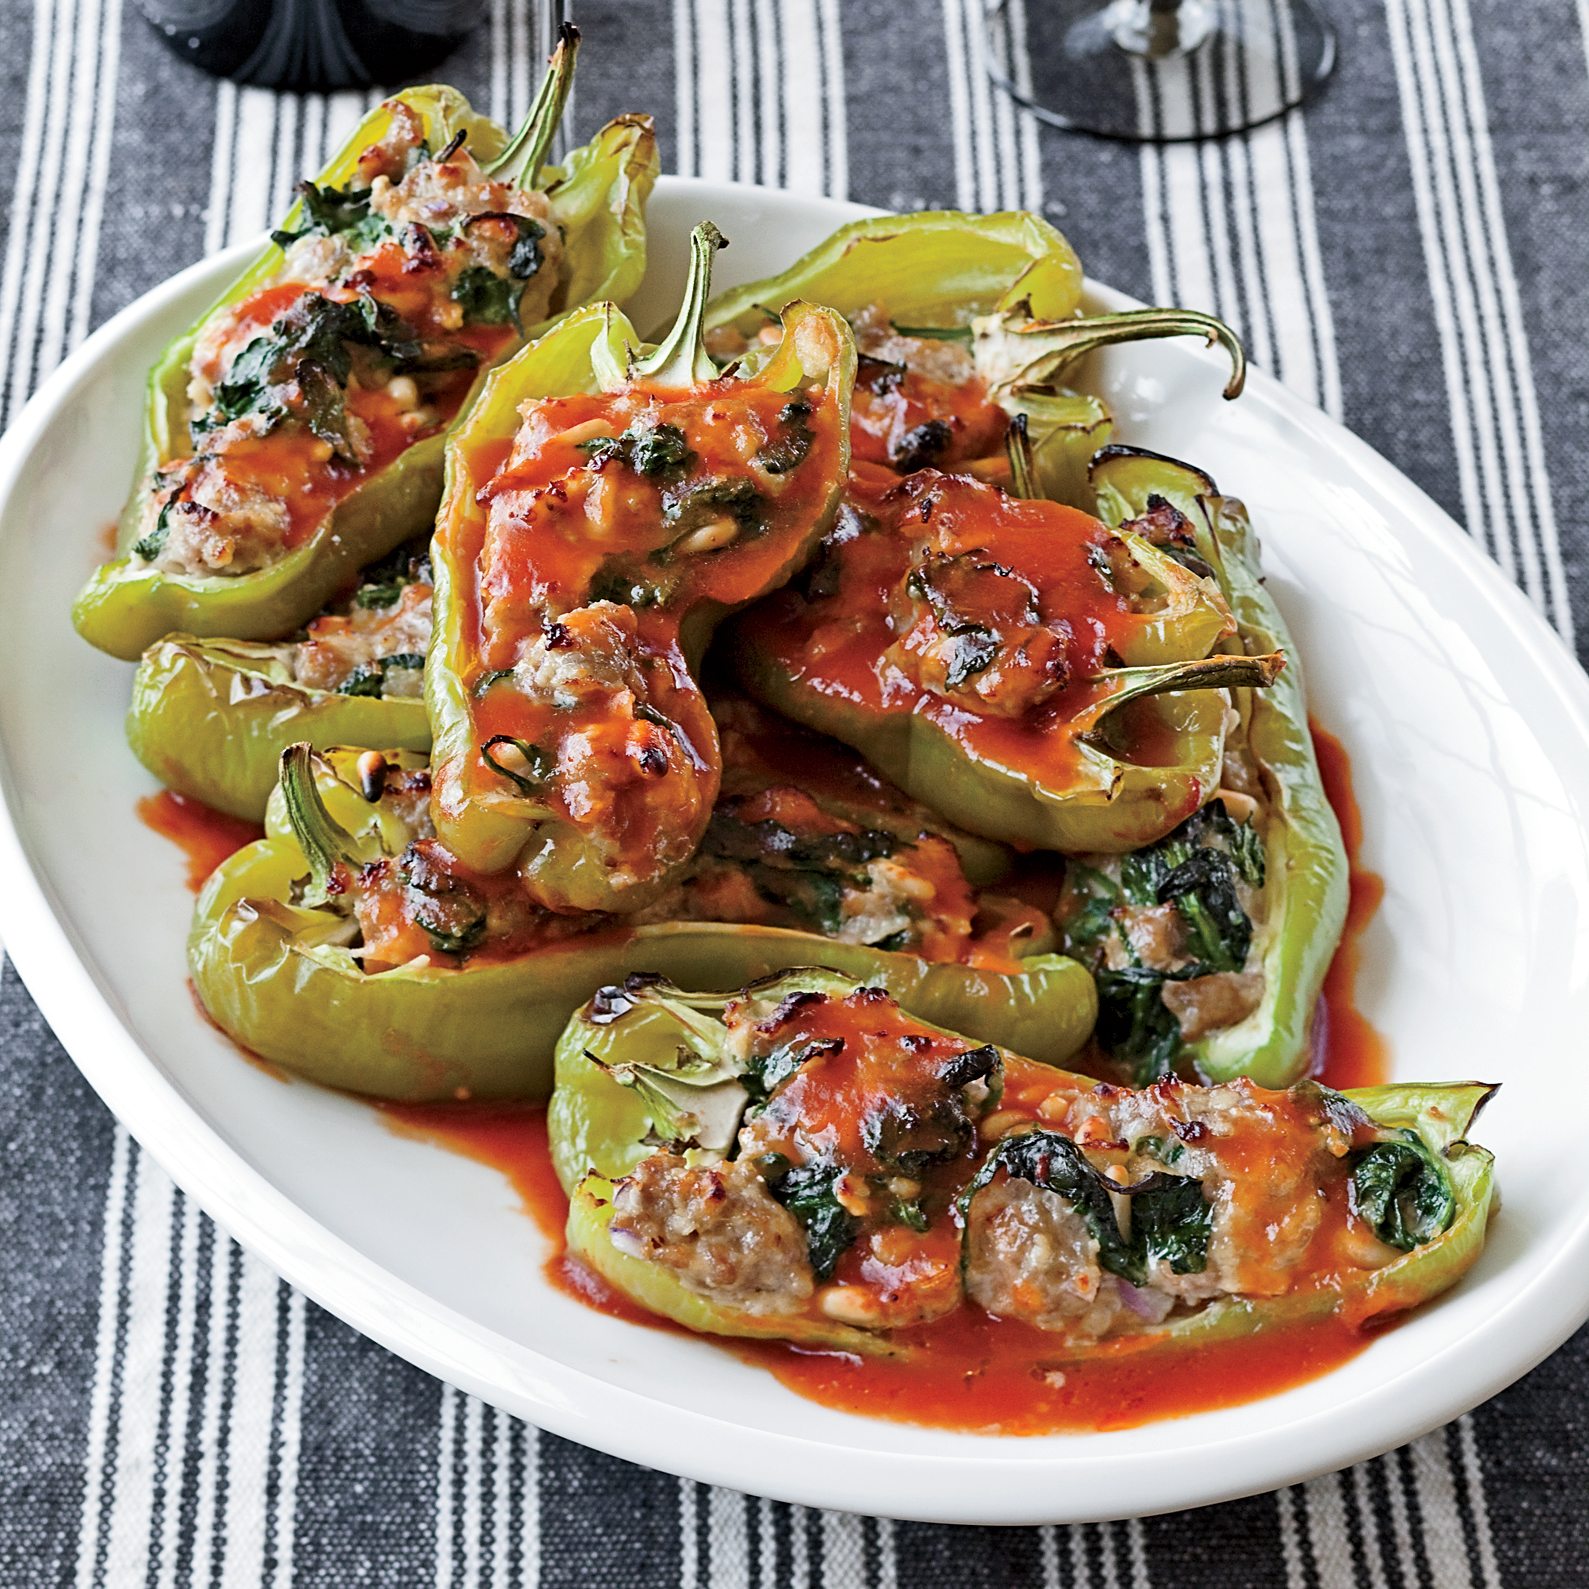 201010-r-stuffed-peppers.jpg